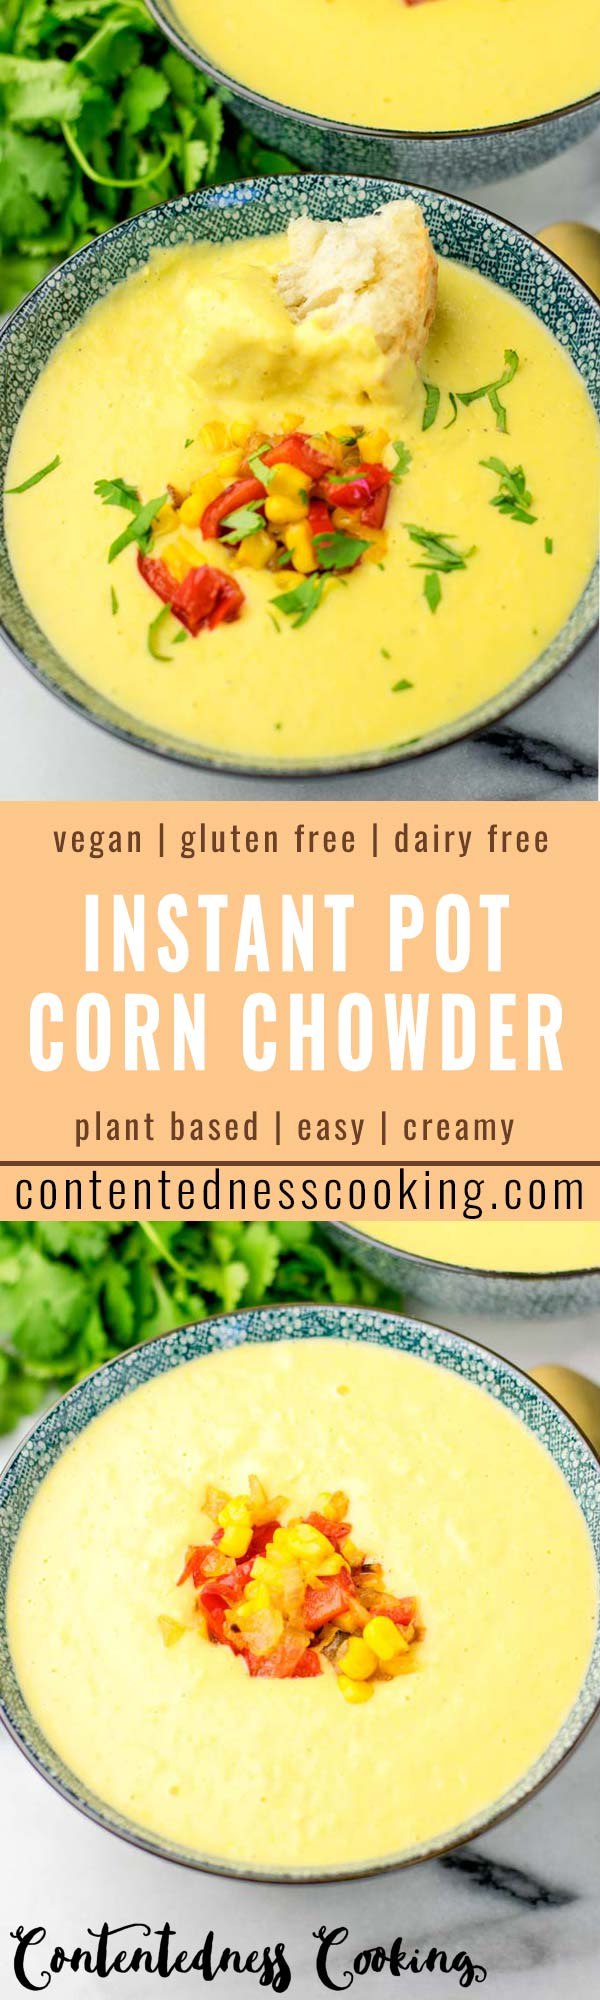 This Instant Pot Corn Chowder is ready in under 10 minutes in your Instant Pot. The ultimate comfort food so satisfying no one would ever guess it's vegan, gluten free and made with such simple ingredients. A family favorite for everyone for dinner, lunch, meal prep an so much more. #vegan #dairyfree #glutenfree #cornchowder #instantpot #kidsfriendlydinners #familymeals #mealprep #10minutemeals #contentednesscooking #budgettmeals #worklunchideas #comfortfood